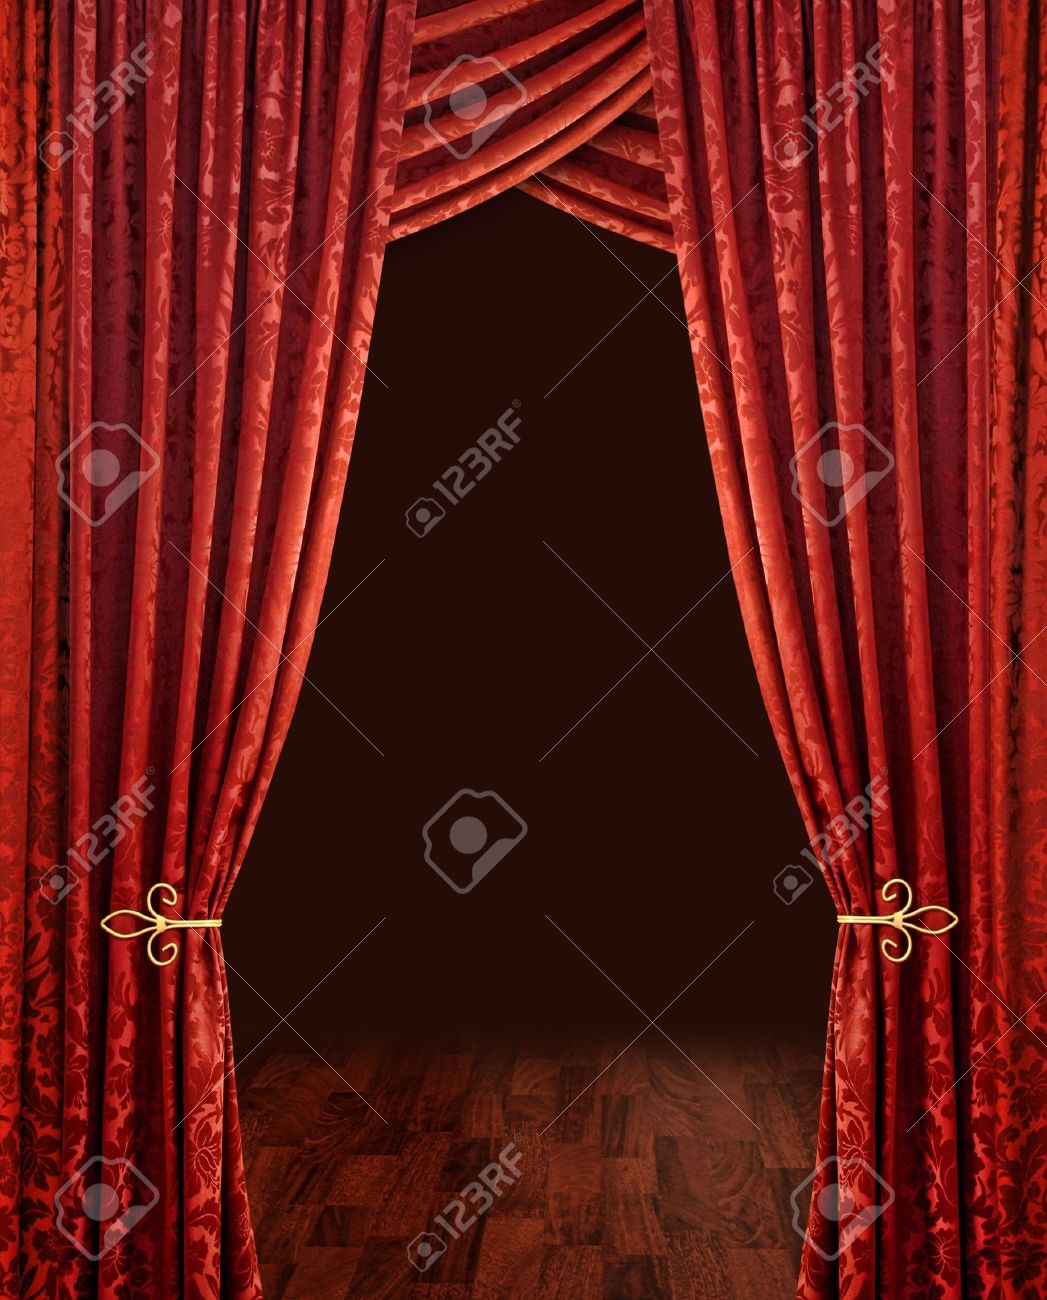 Stage curtain background open stage curtains background red stage - Red Theatre Stage Curtains Brown Wooden Floor And Dark Background Stock Photo 5545958